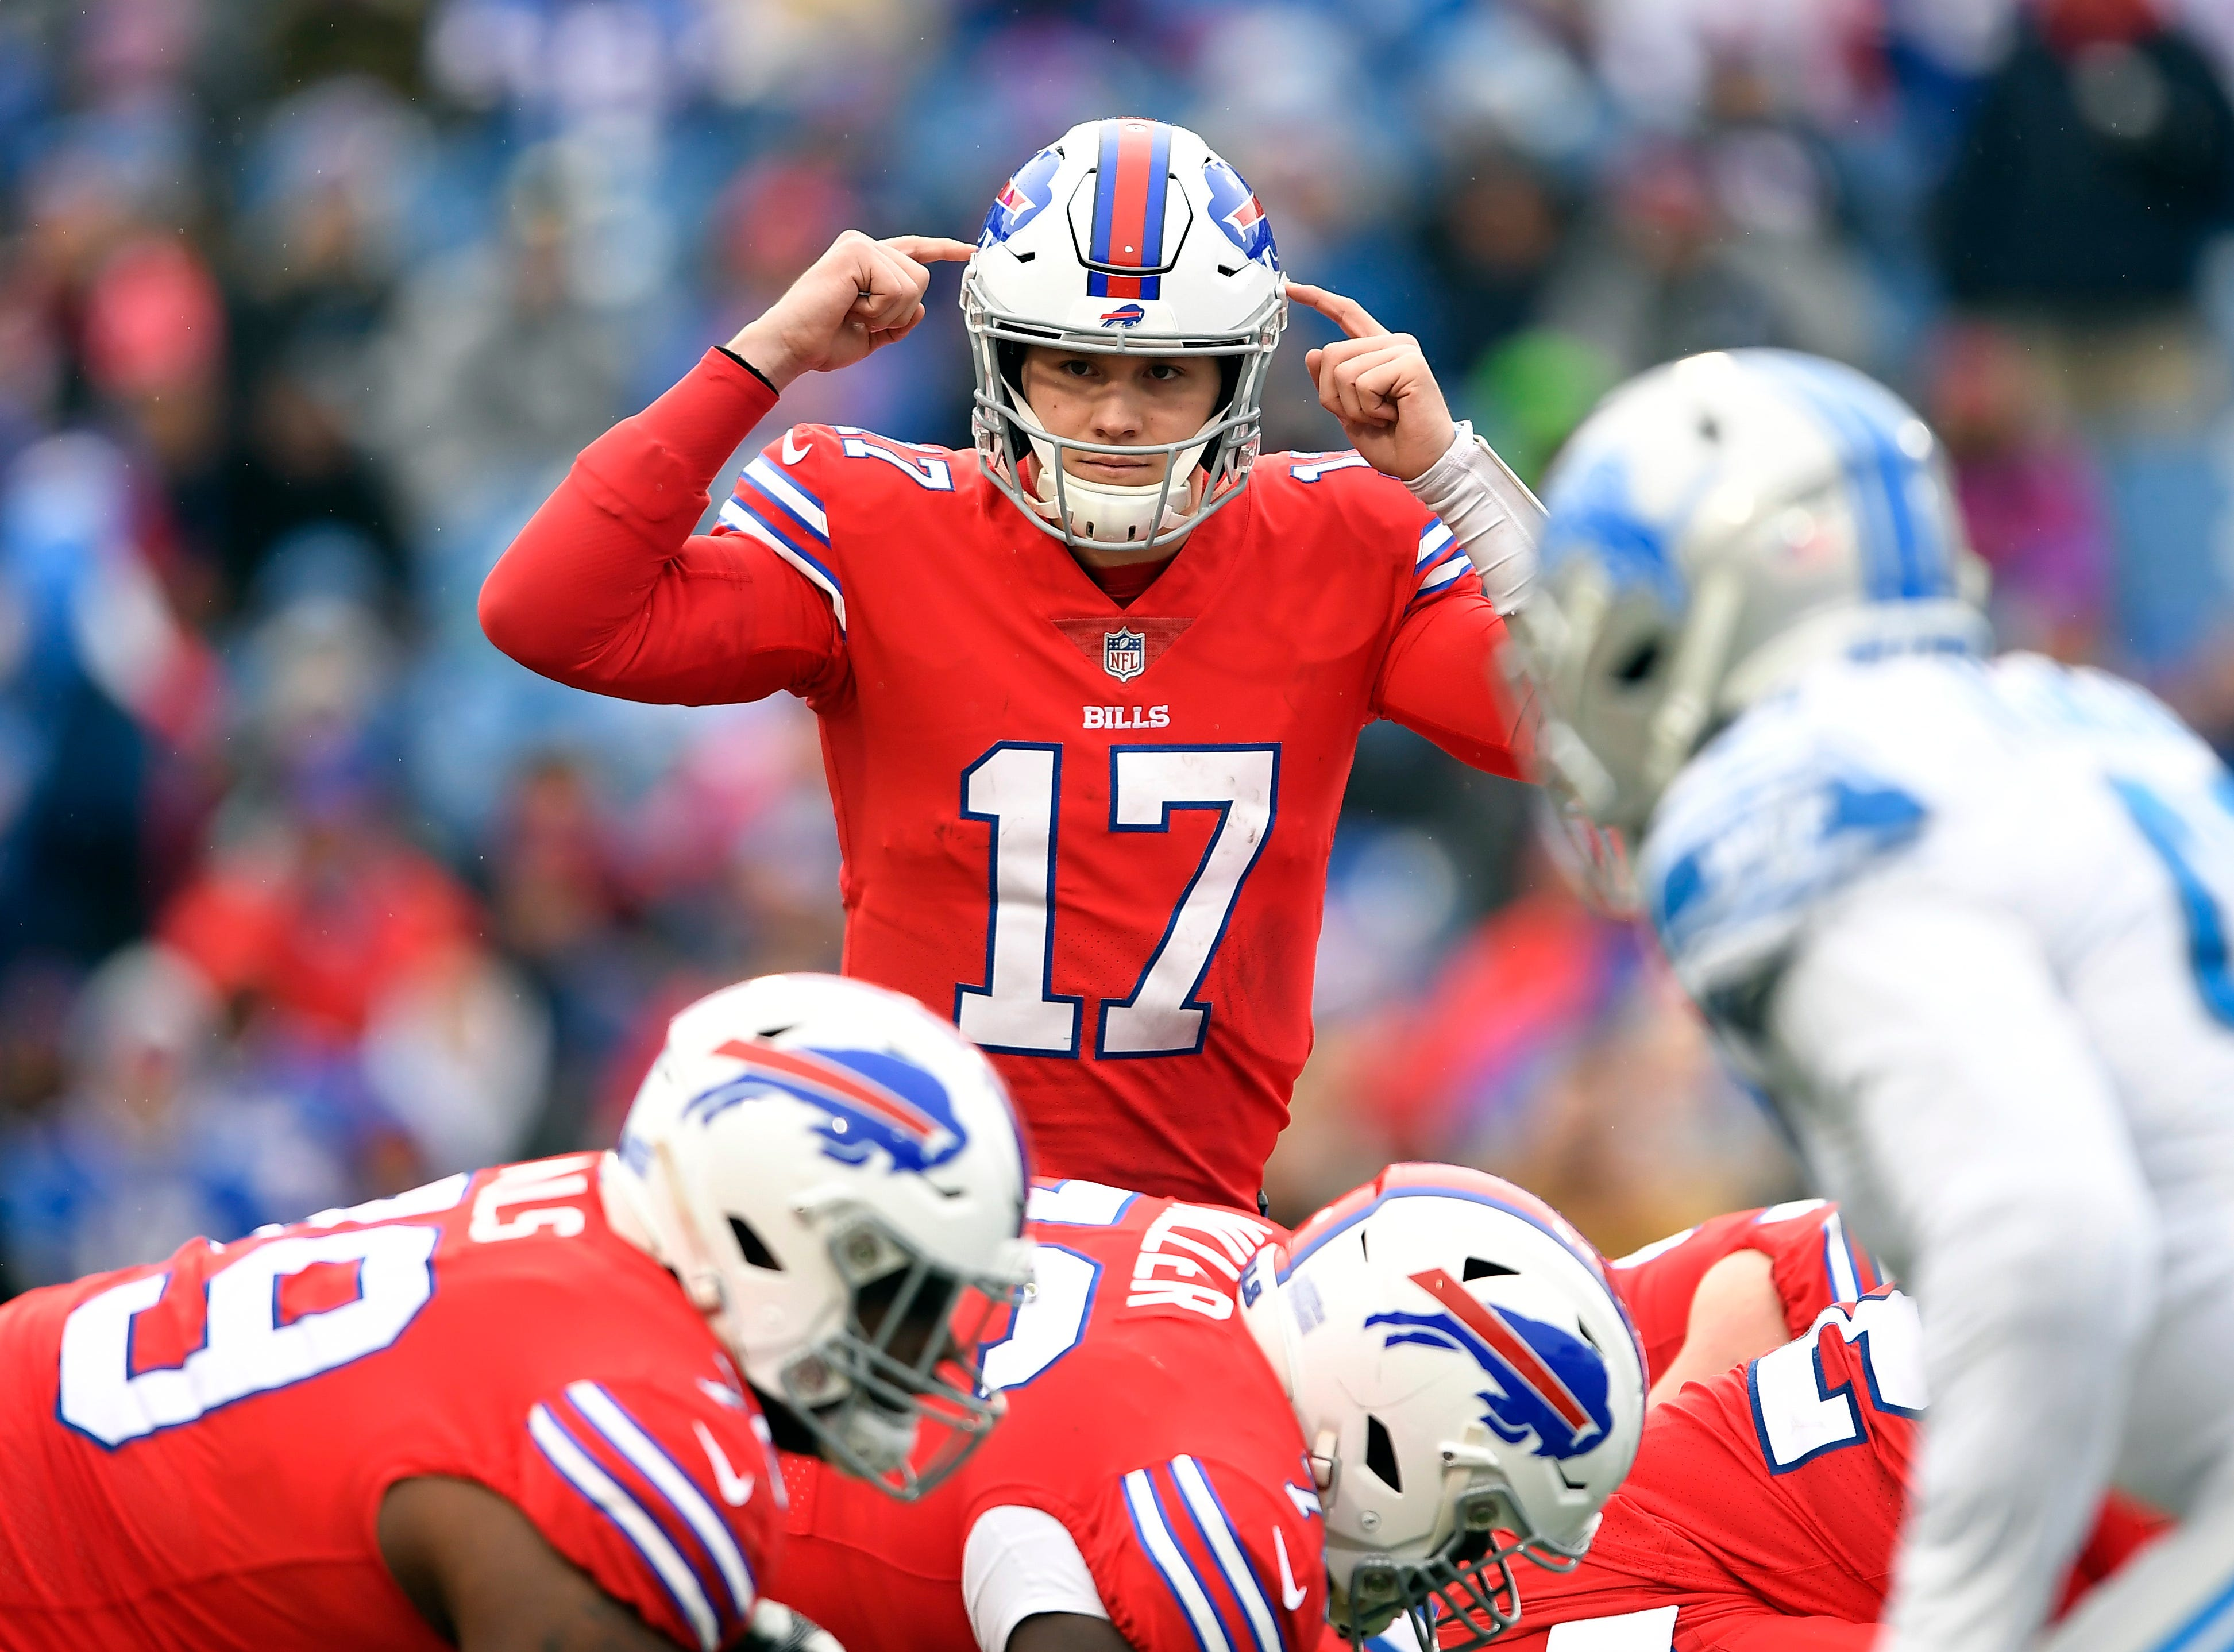 Buffalo Bills quarterback Josh Allen (17) gives a signal to teammates during the first half.